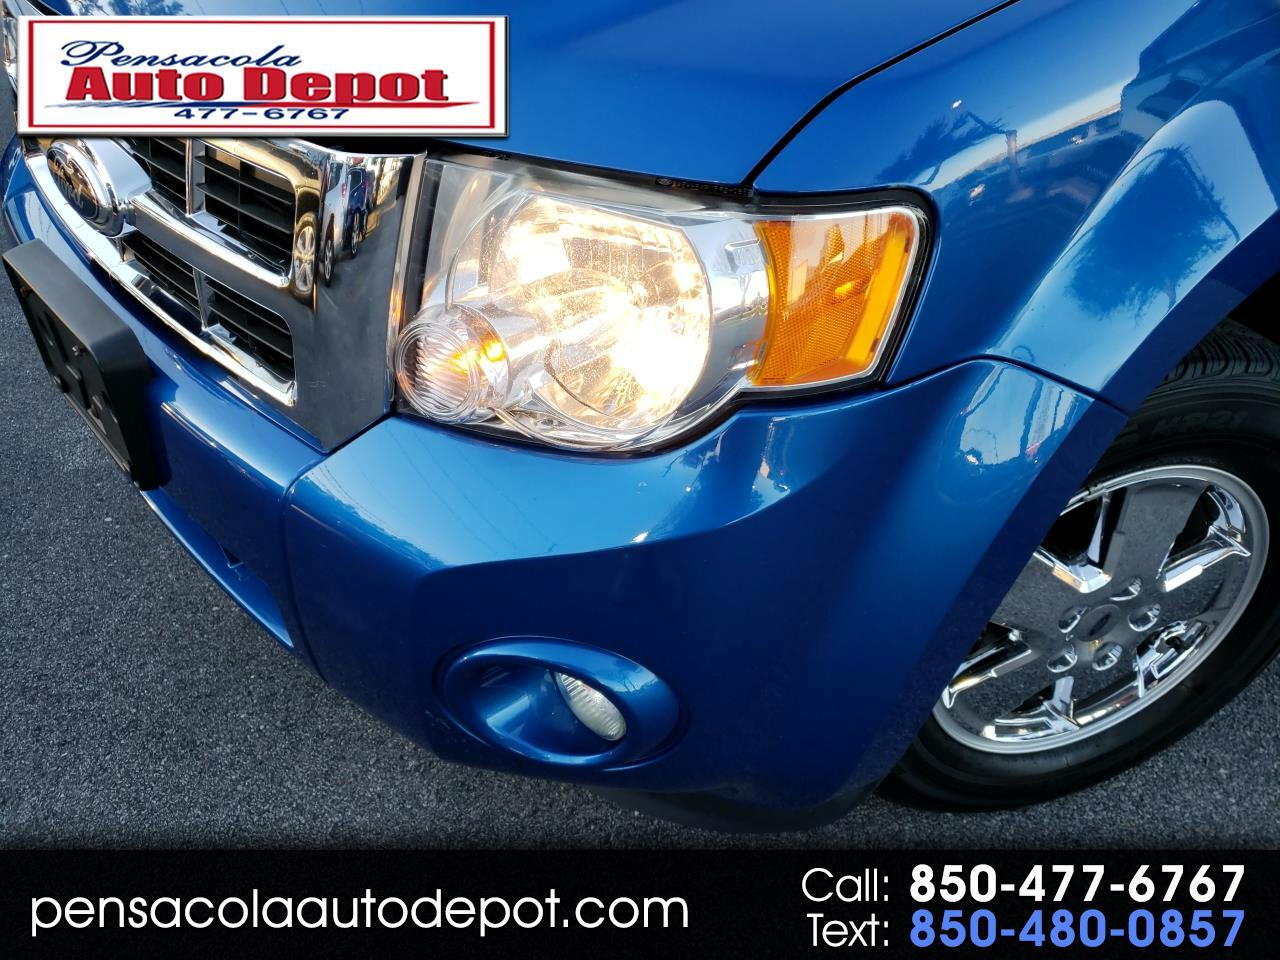 2012 Ford Escape 2WD 4dr V6 Auto XLT